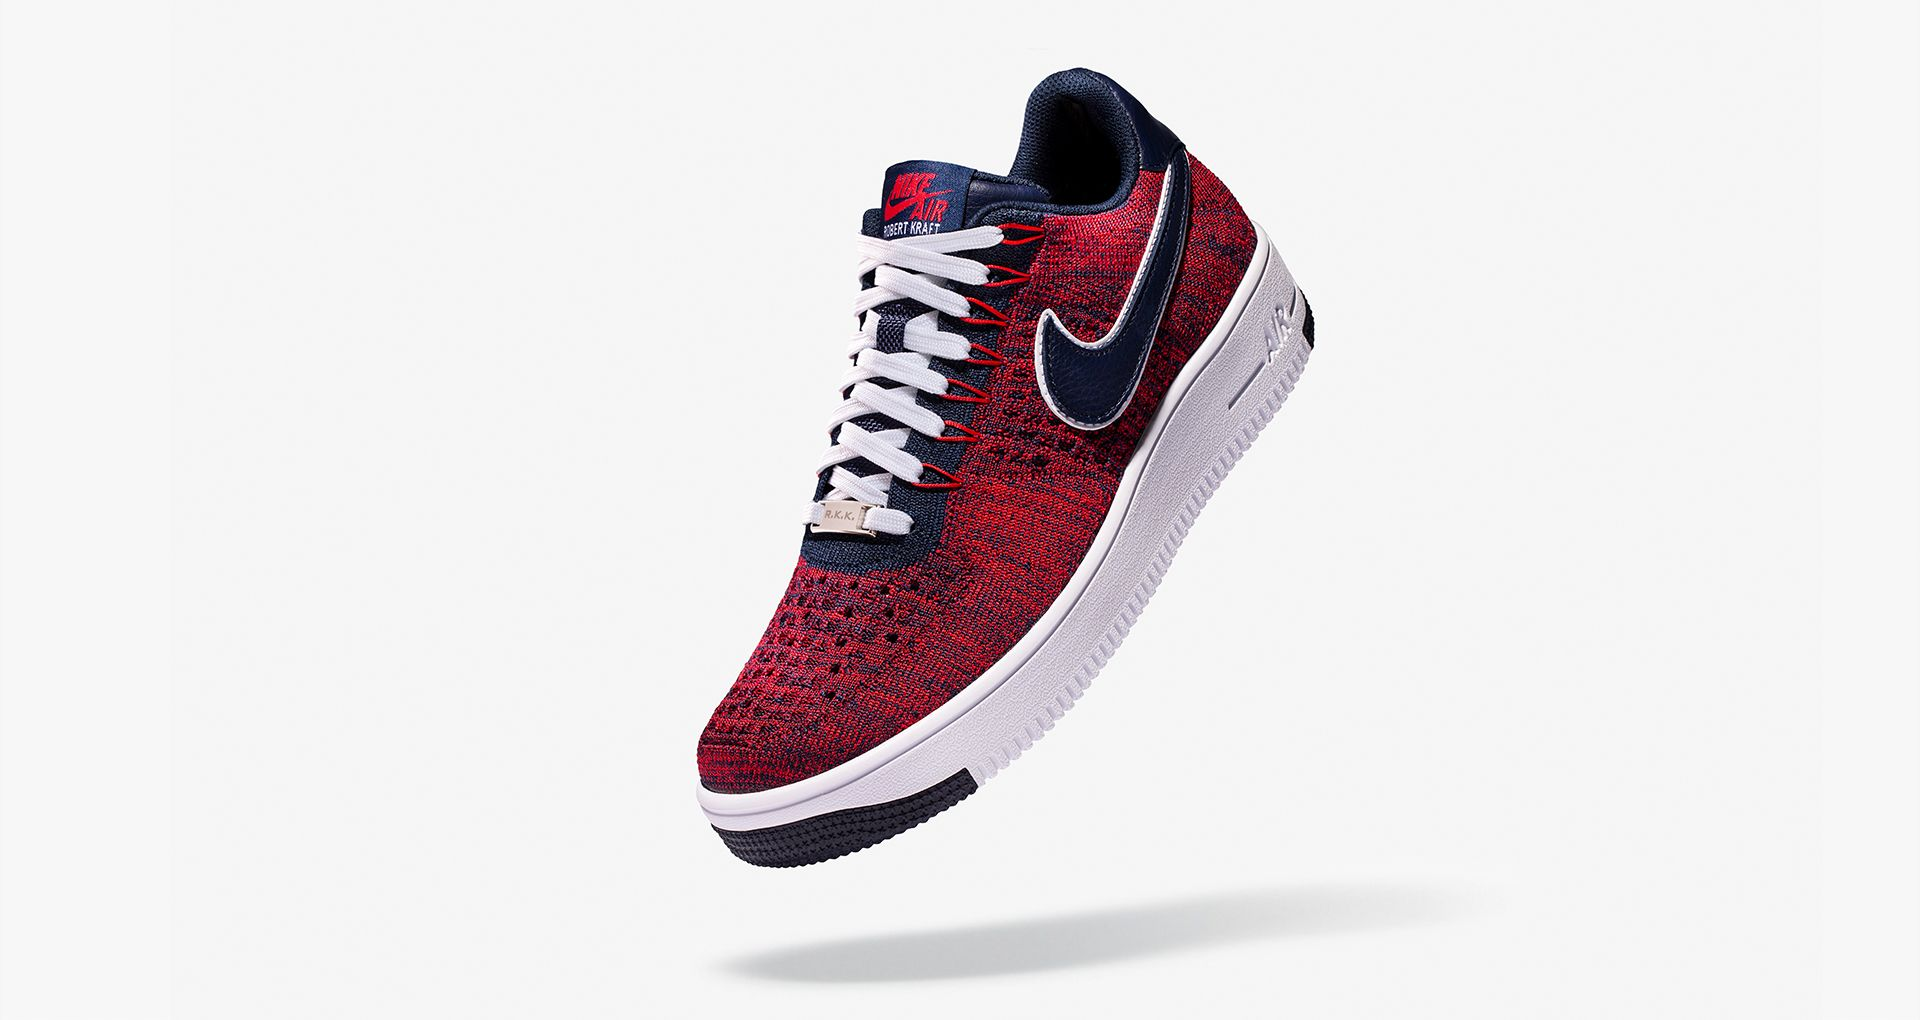 67102e79cabf Nike Air Force 1 Ultra Flyknit Low RKK  University Red   Navy ...